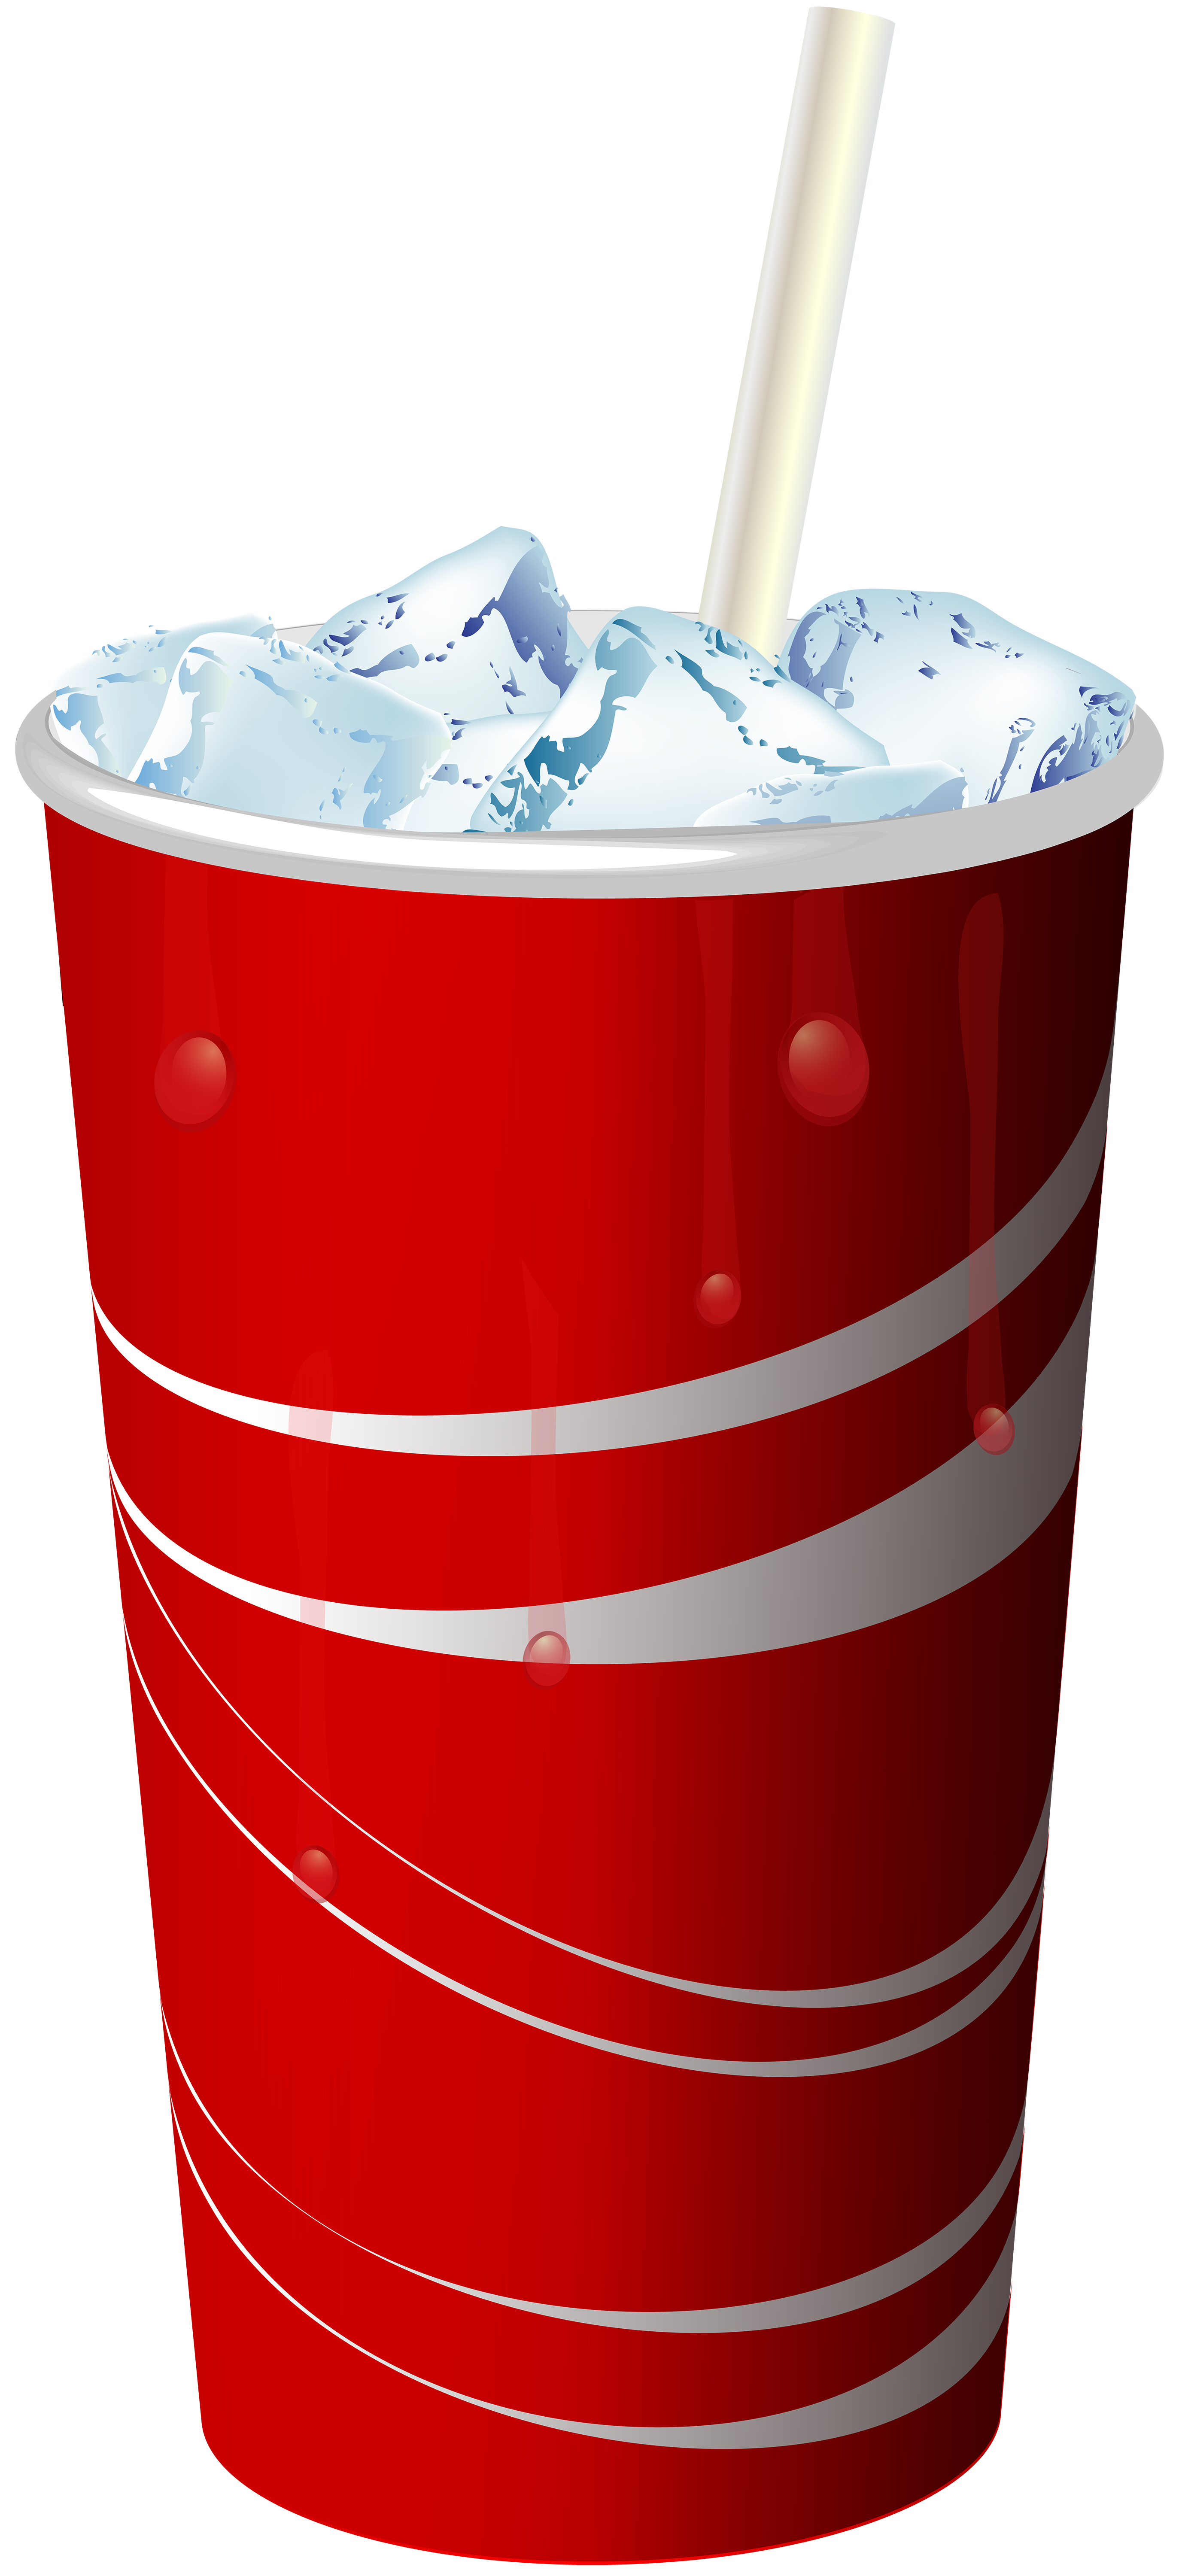 Drinks clipart border. Drink with ice transparent